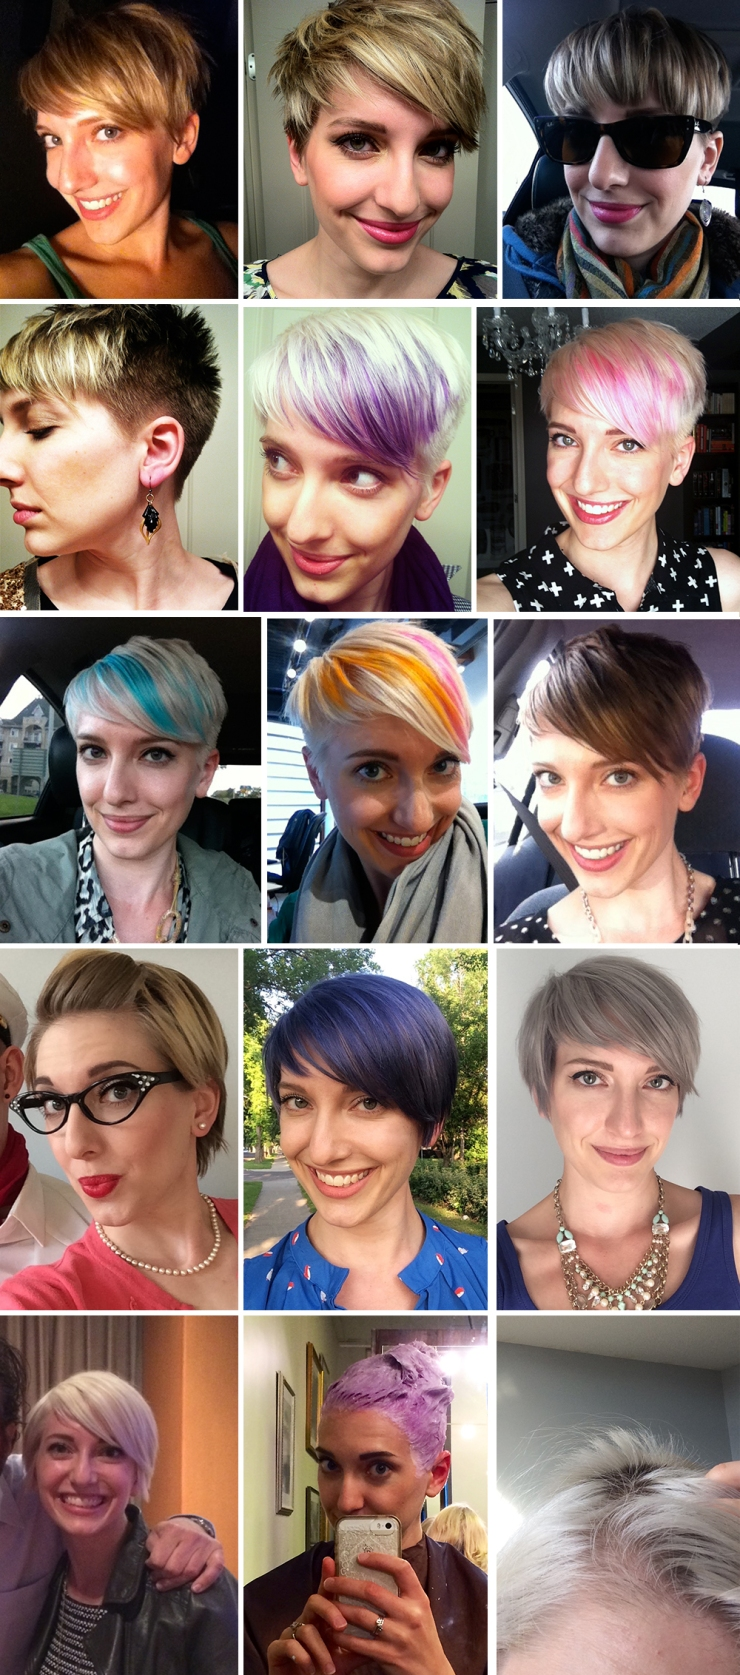 HairstyleHistory_Colors